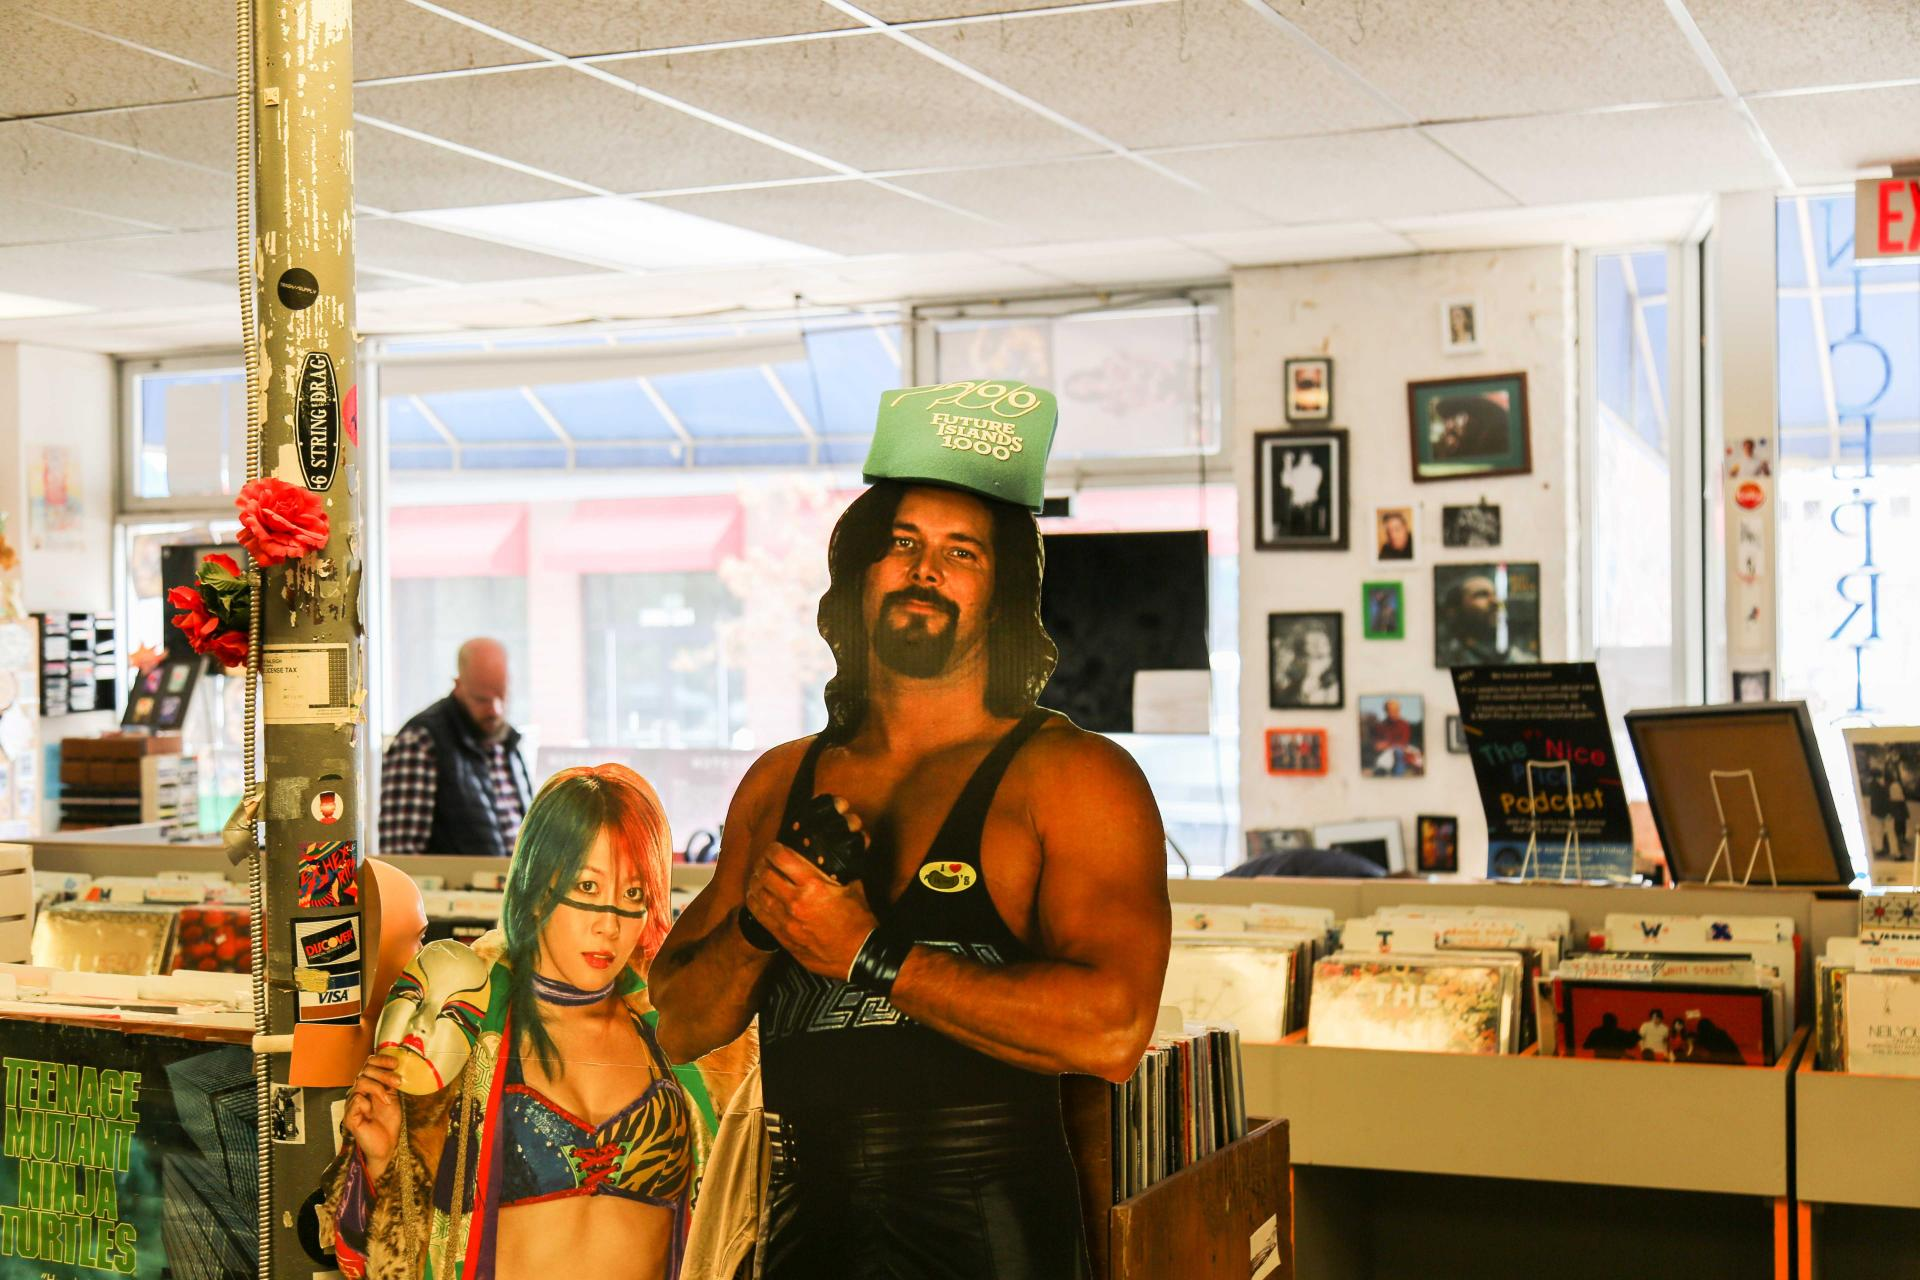 Pictured here: Two pro-wrestler cardboard cut-outs sporting some NC Music gear